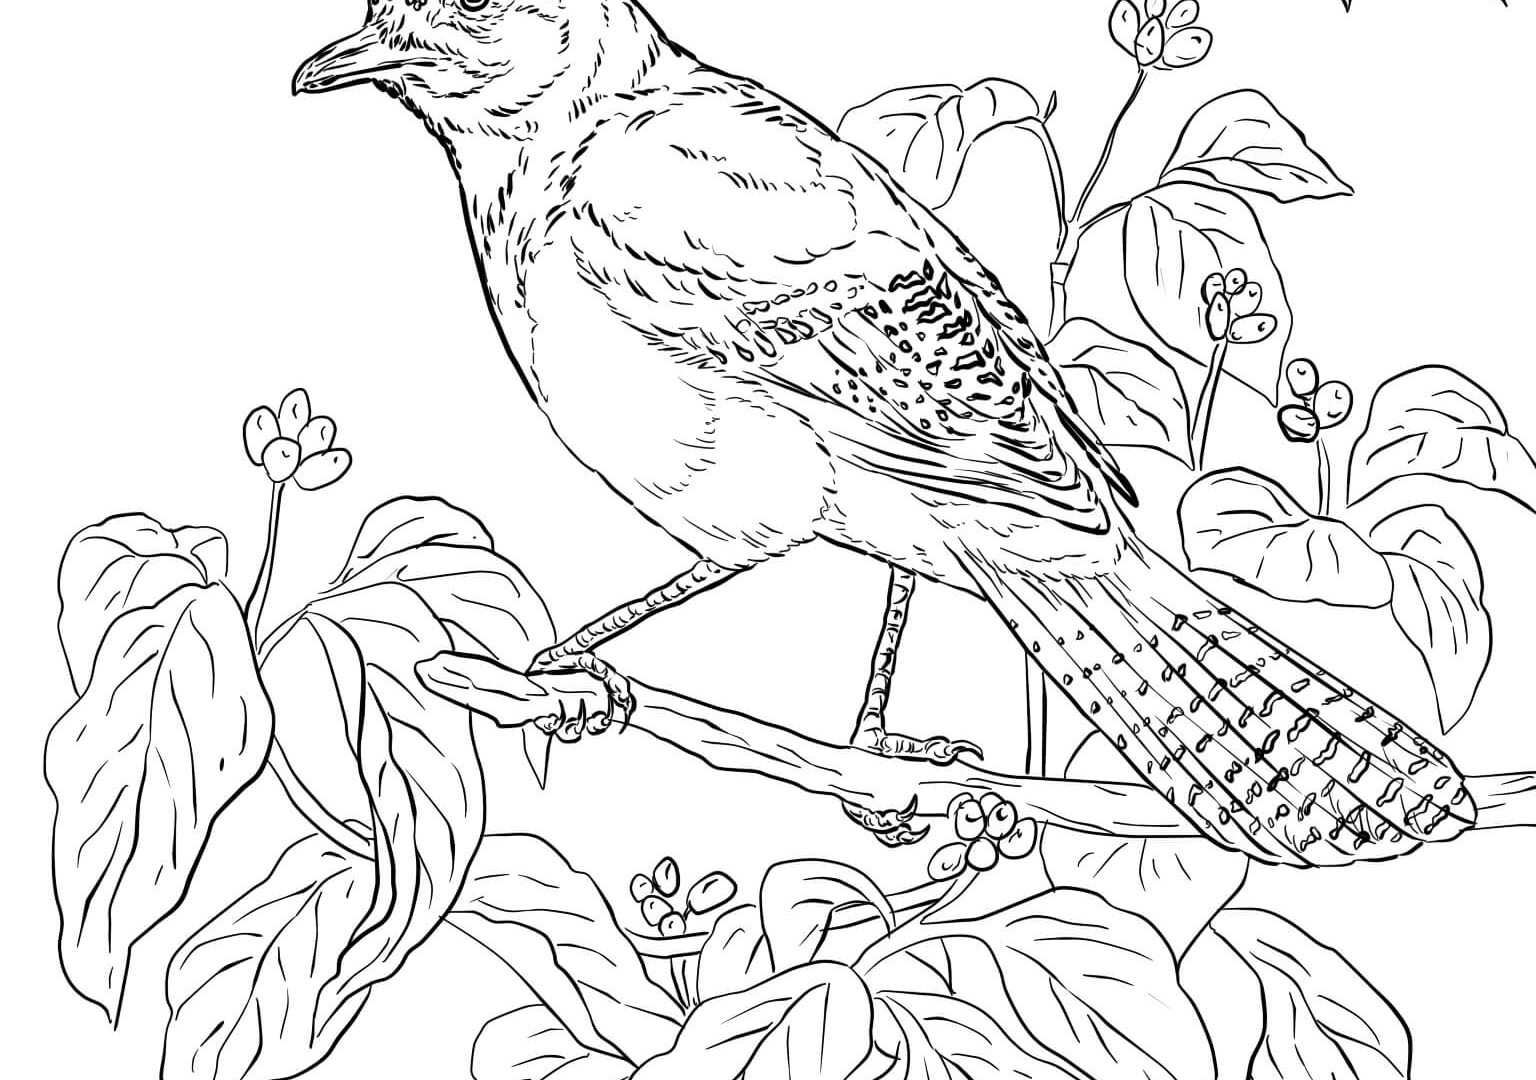 blue jay outline learn how to draw a blue jay birds step by step outline blue jay